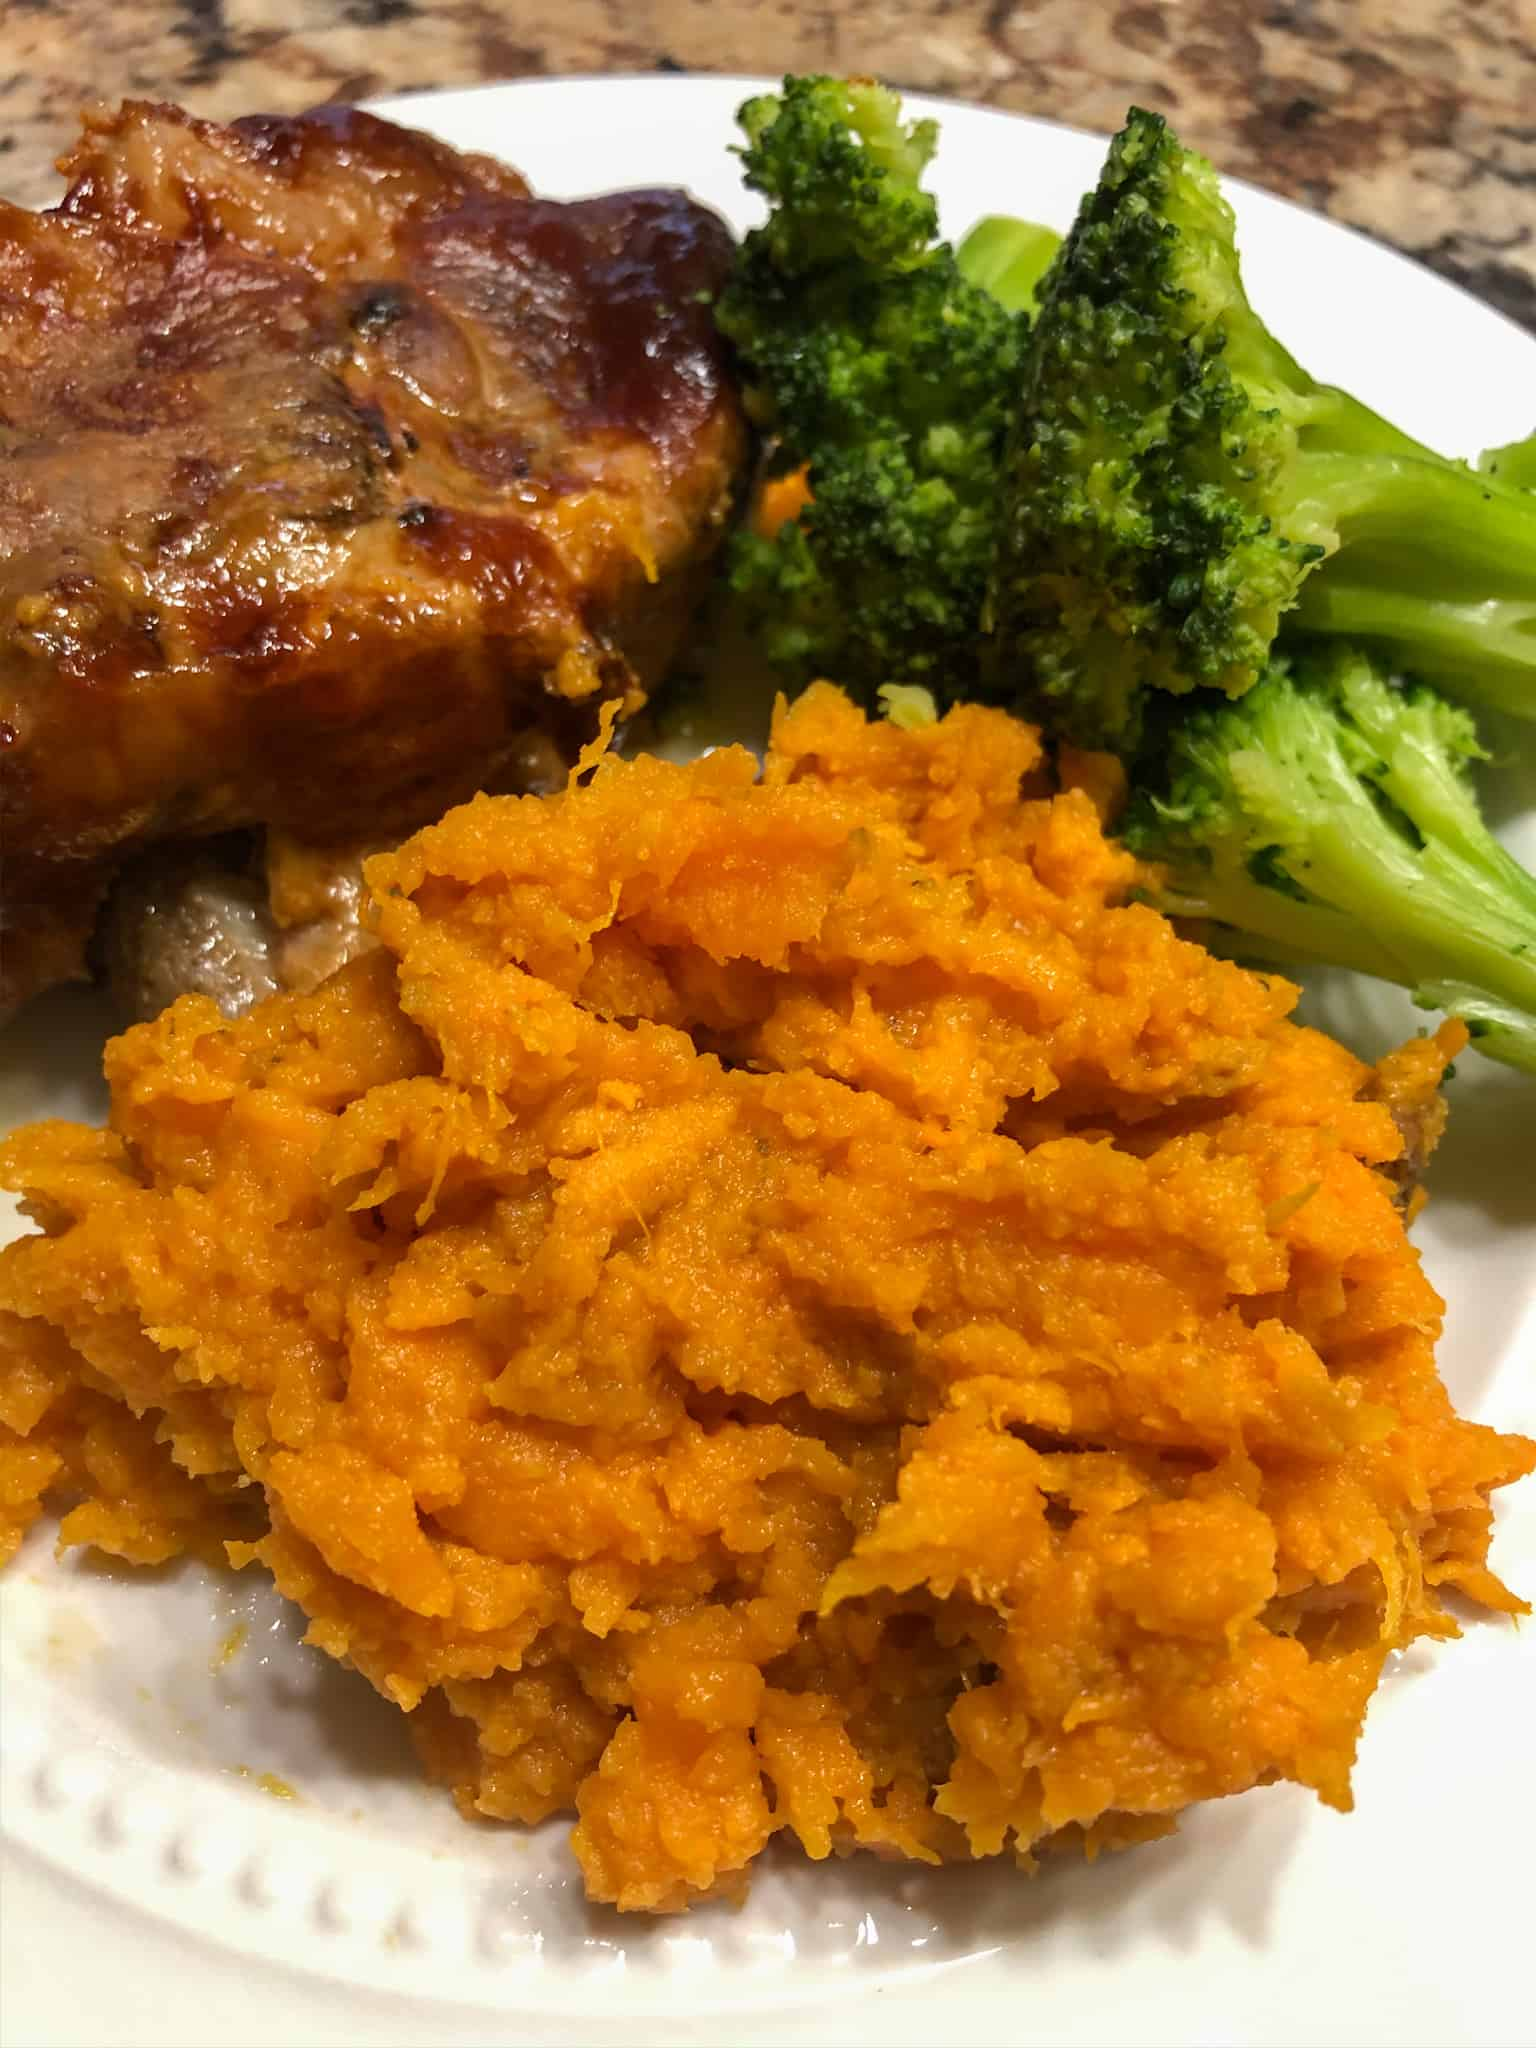 instant pot mashed sweet potatoes with pork ribs and broccoli